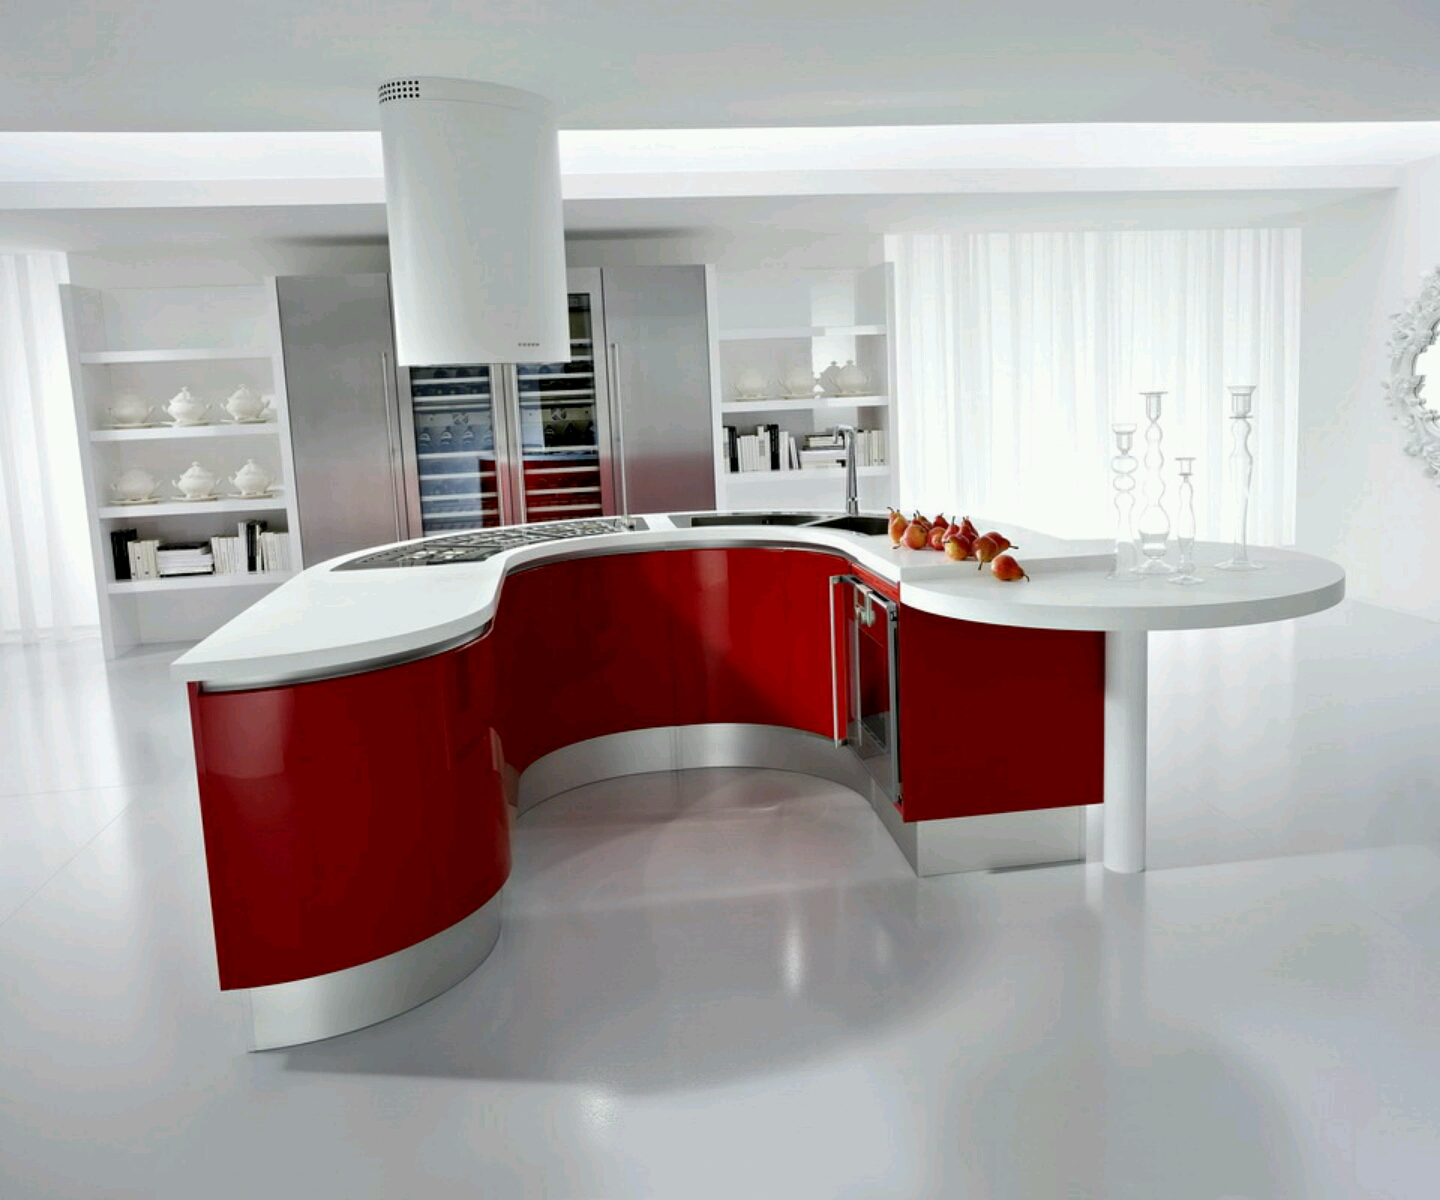 Modern kitchen cabinets designs ideas furniture gallery for Kitchen cabinets modern style